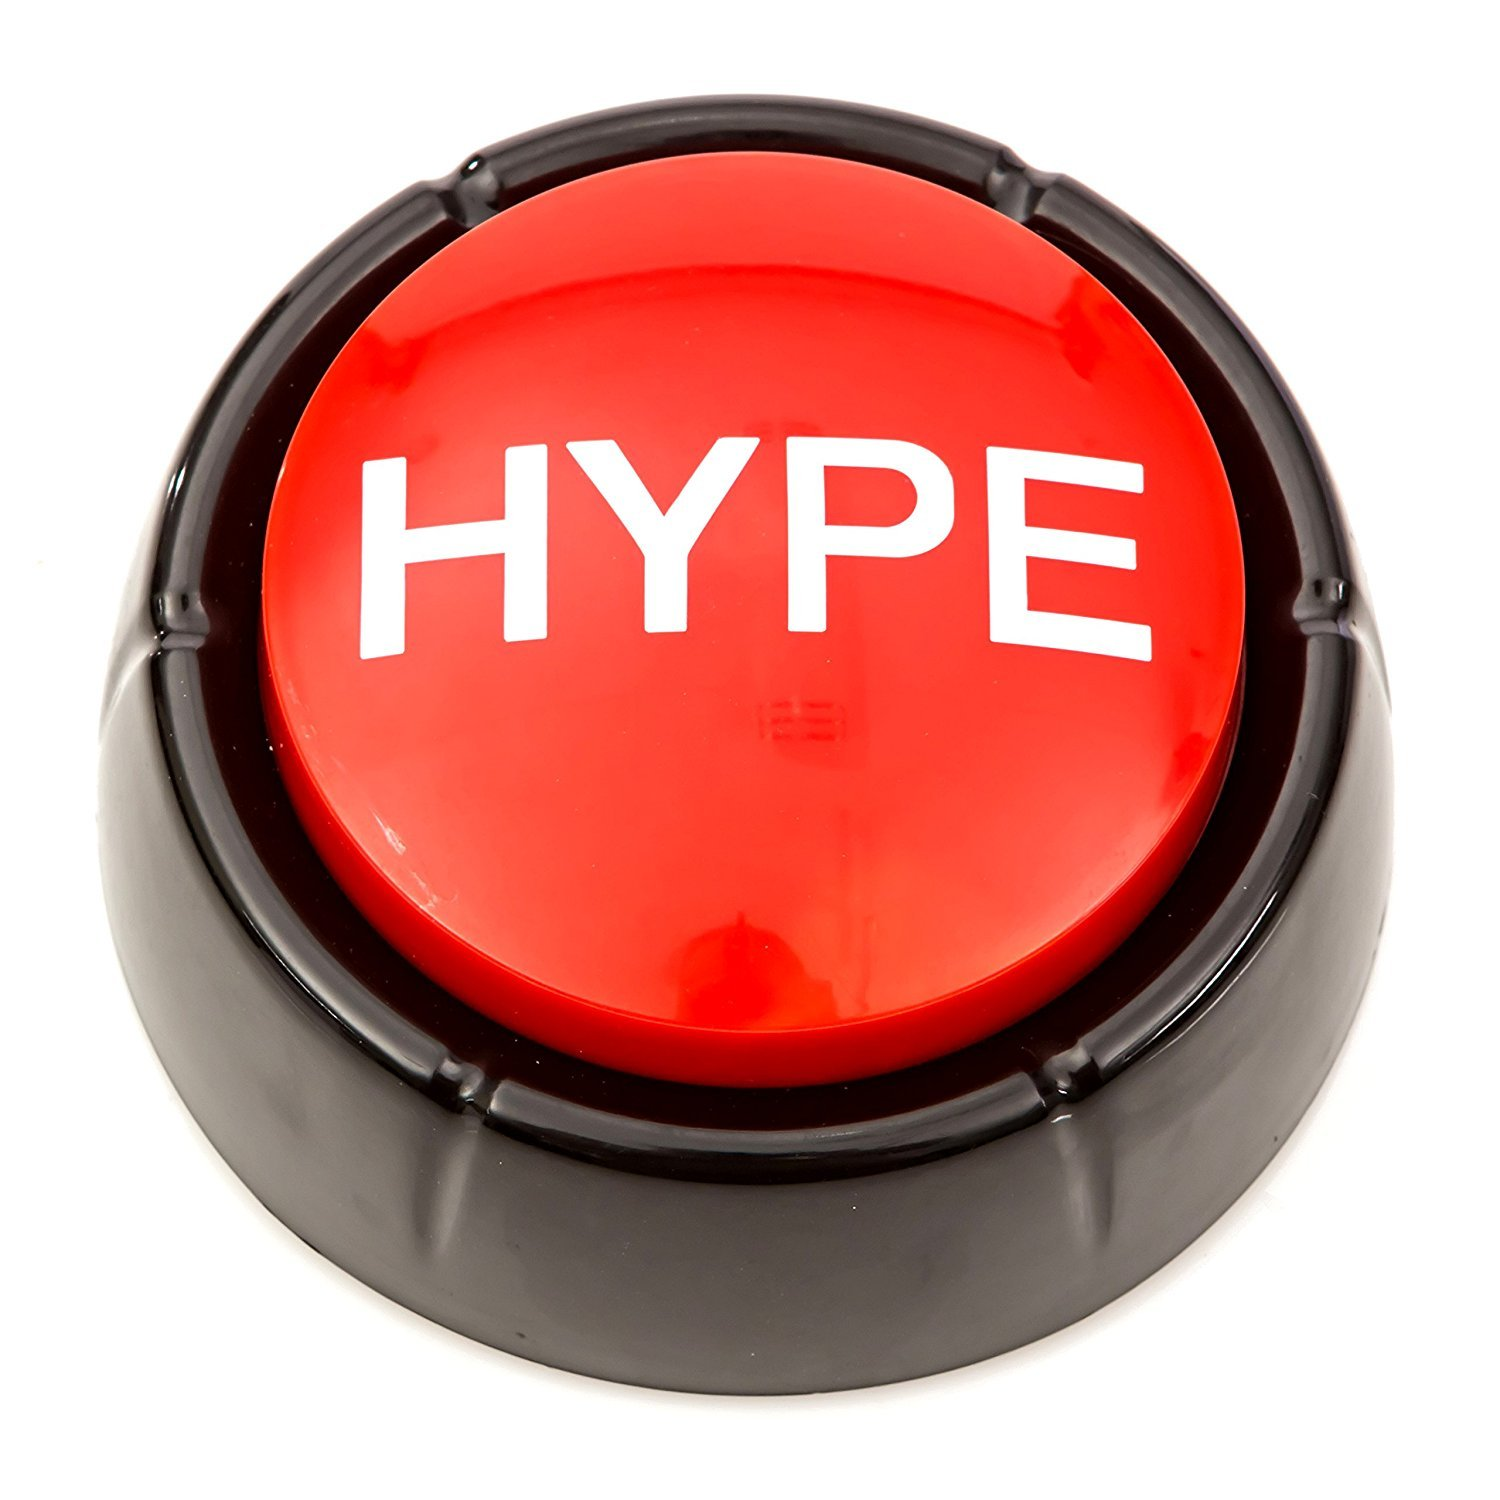 The Hype Button | Hip Hop Air Horn Sound Effect Button Batteries Included